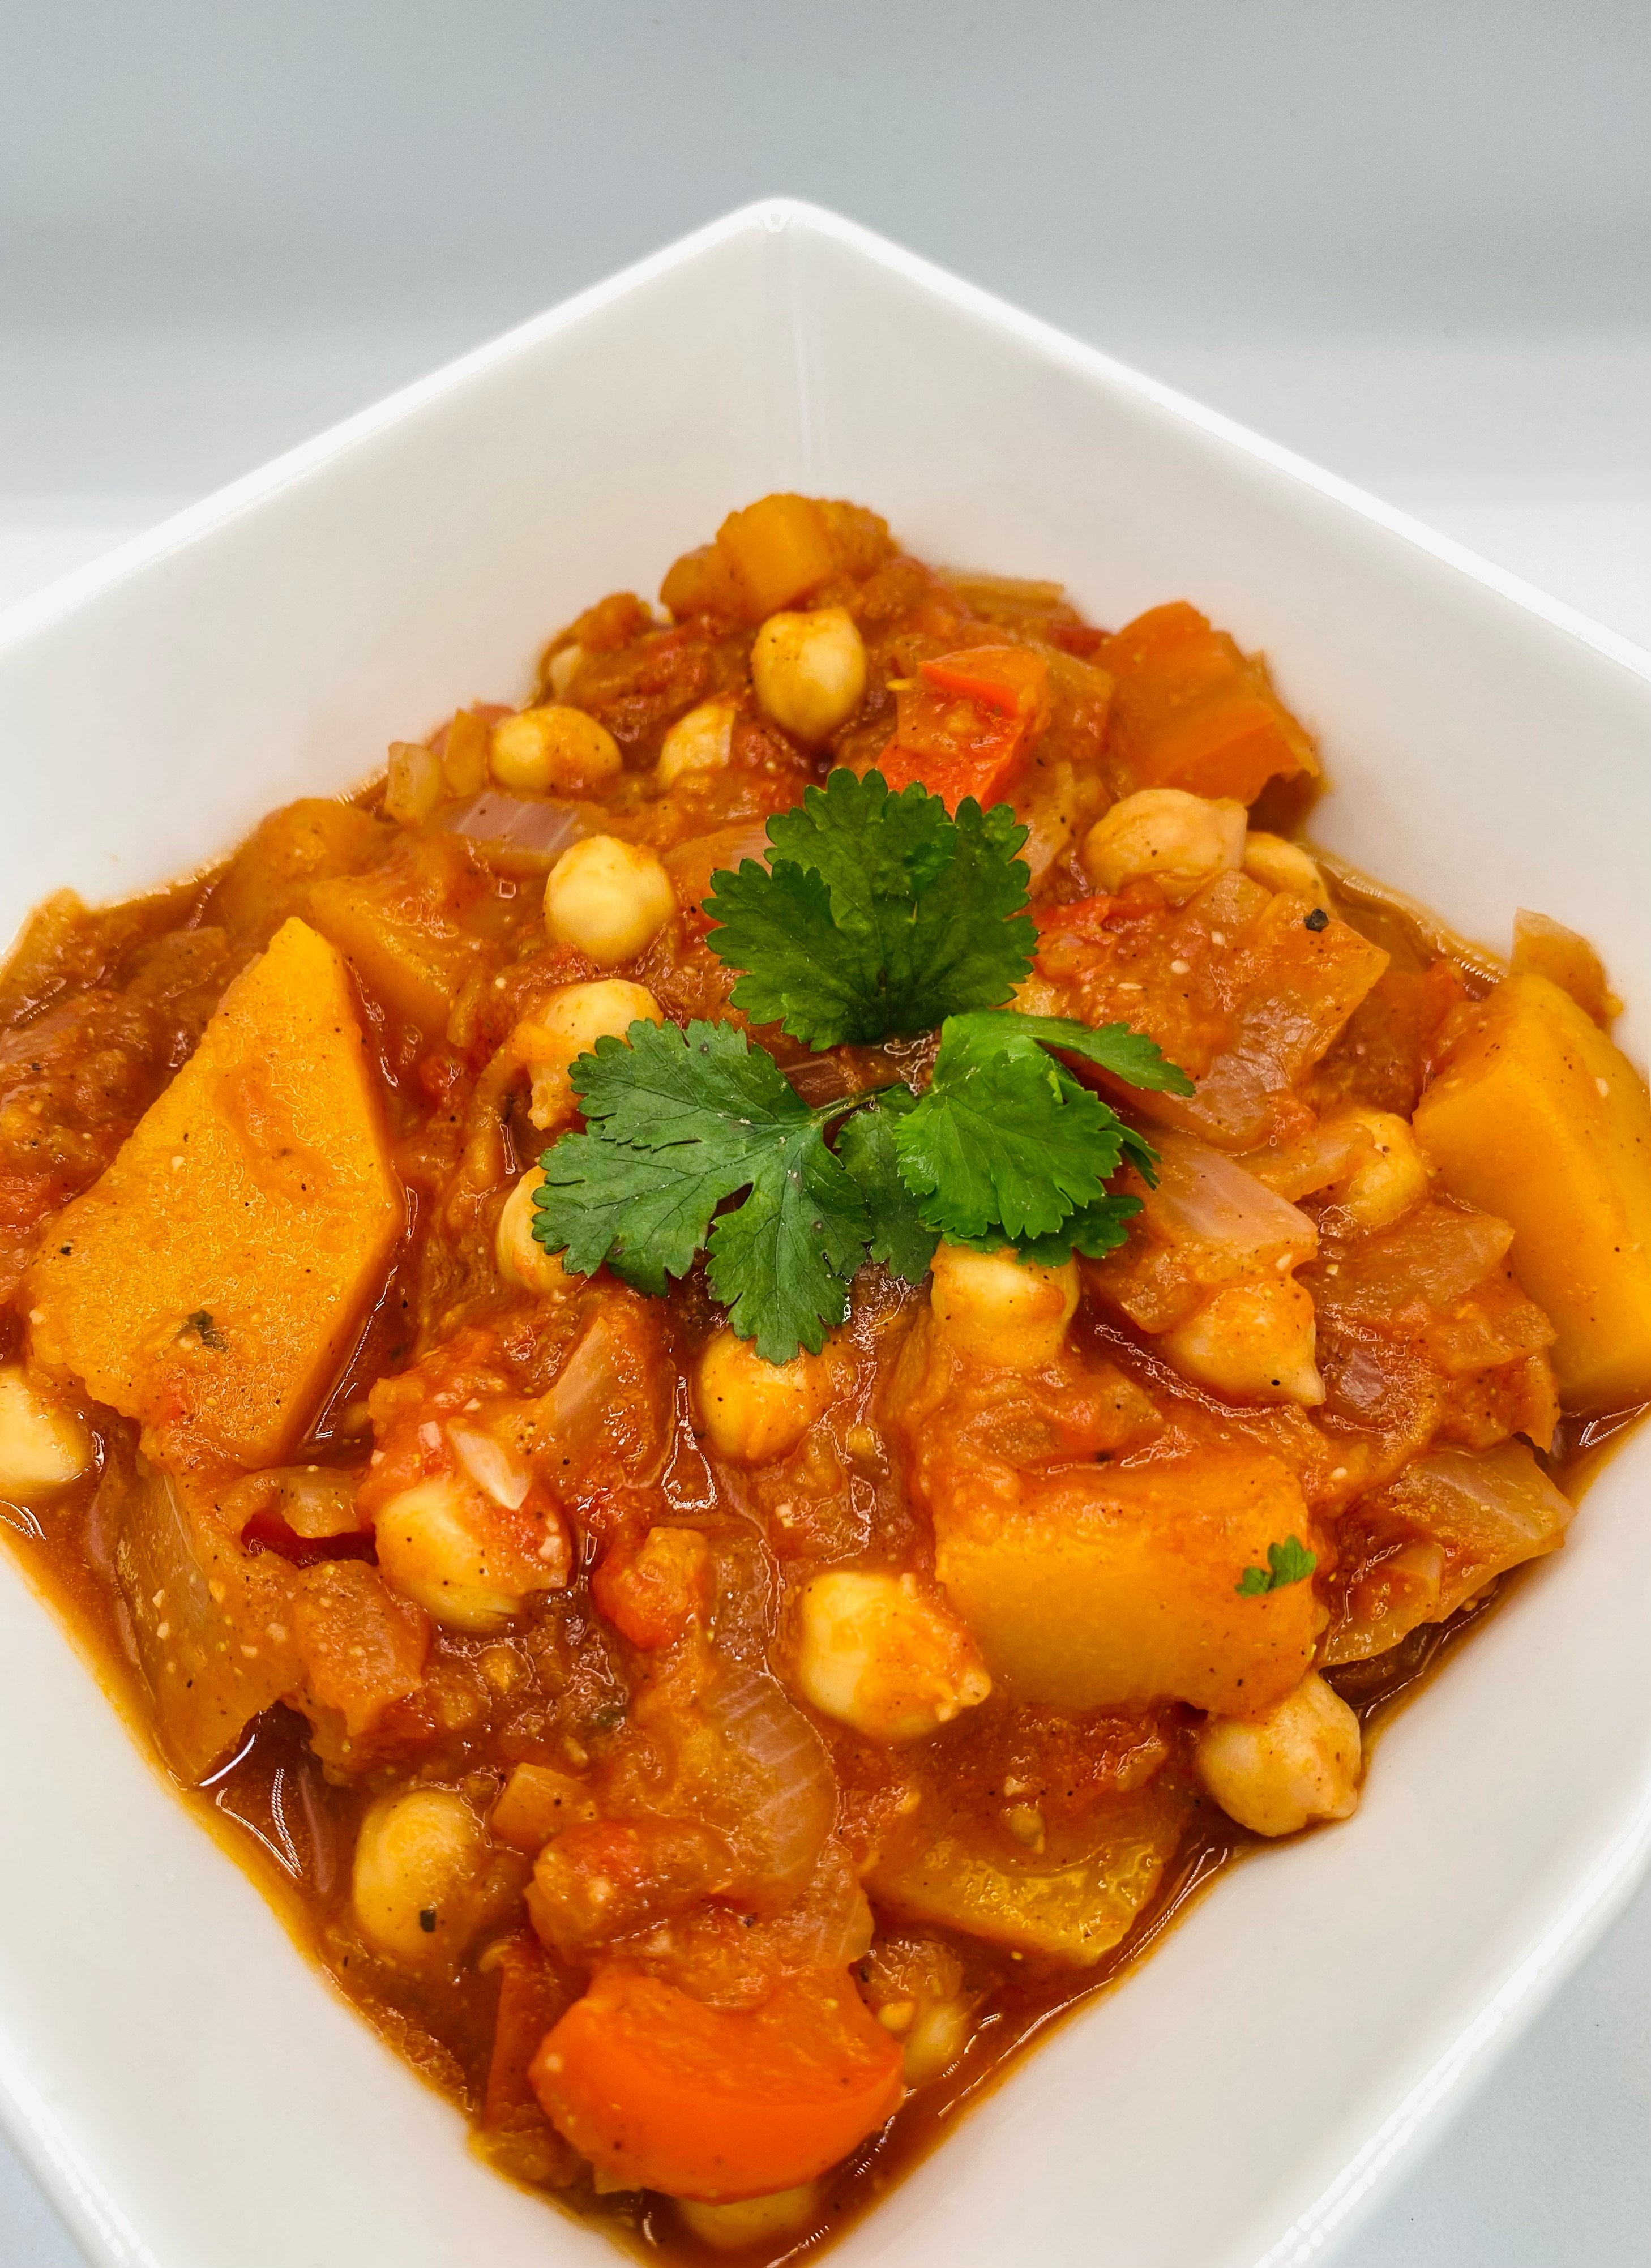 Moroccan vegetable and chickpea stew